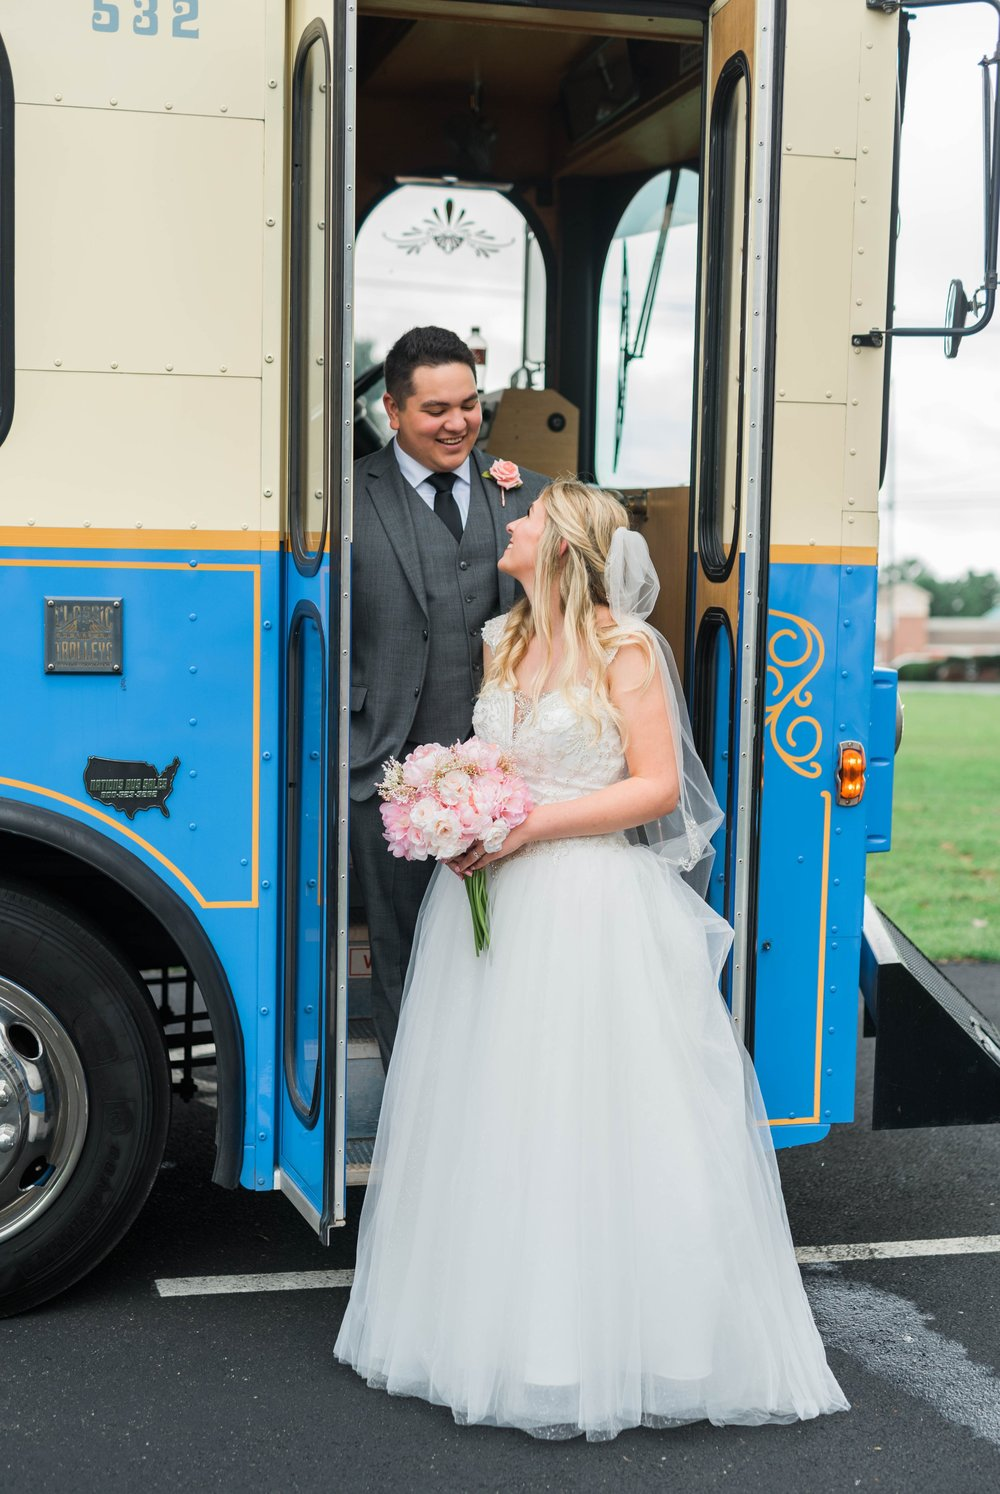 LynchburgVirginia_Virginiaweddingphotographer_michaelkim 7.jpg